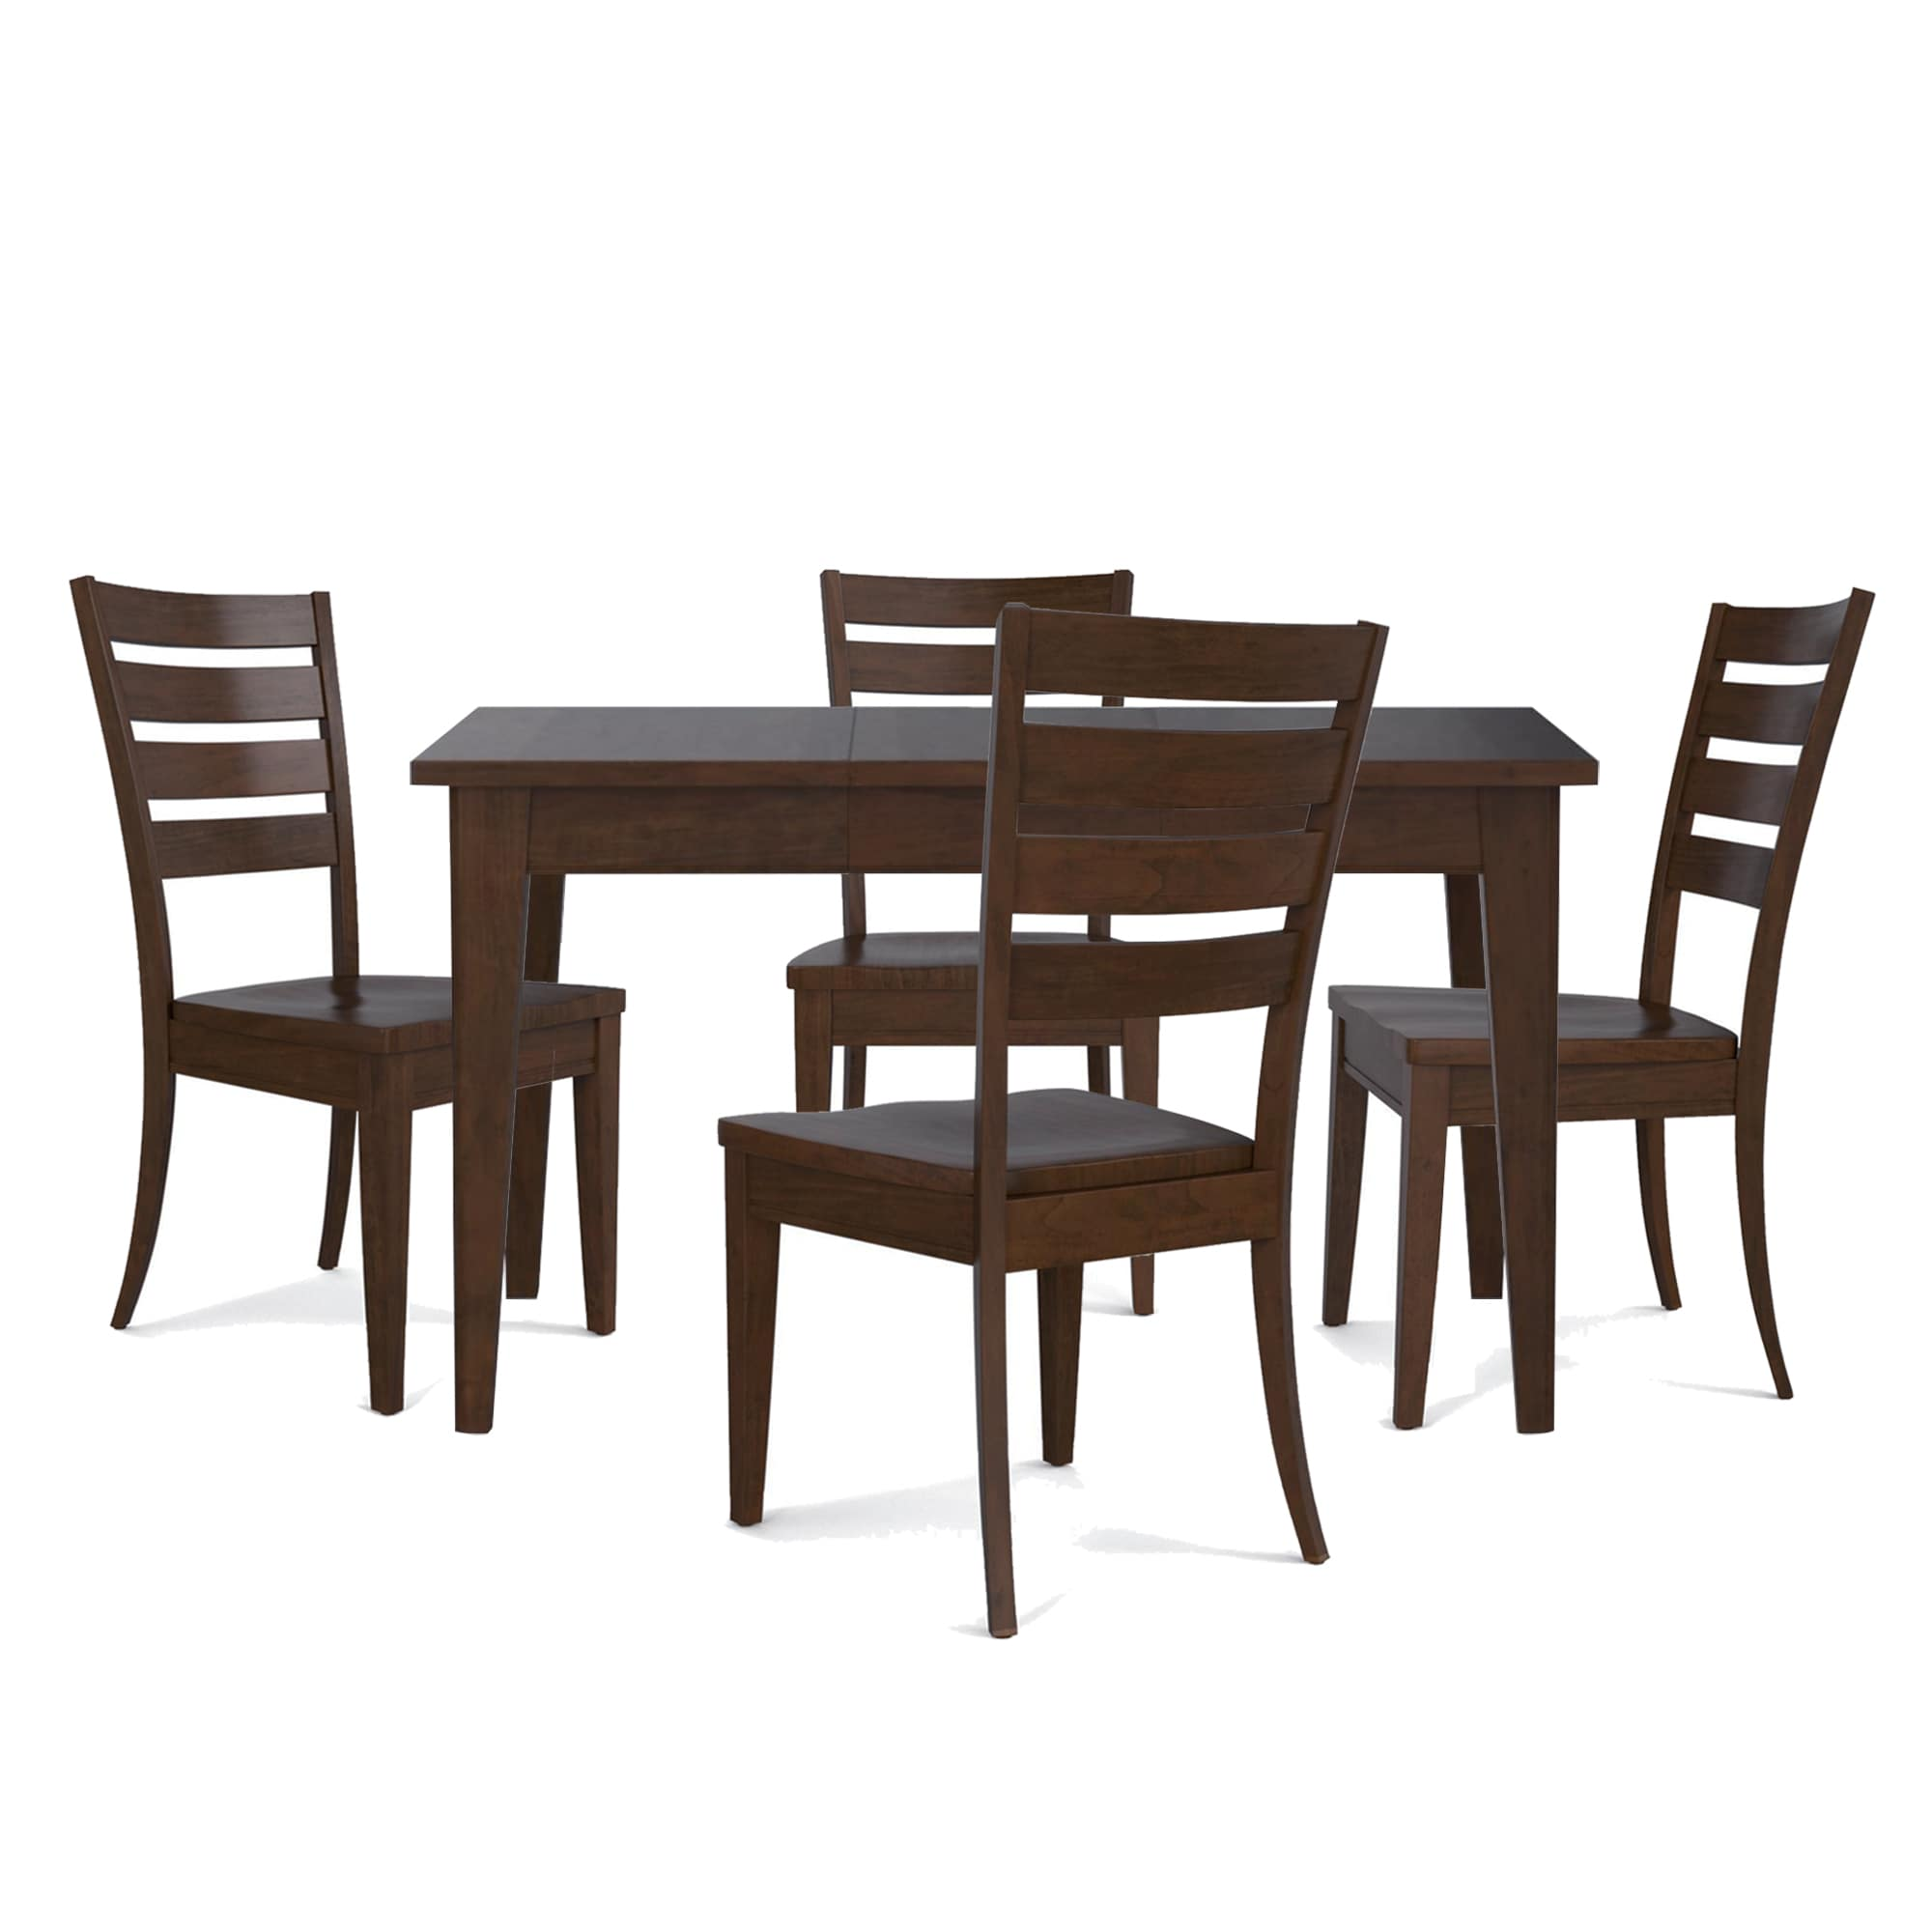 Marvelous Custom Dining Dining Table And 4 Chairs Forskolin Free Trial Chair Design Images Forskolin Free Trialorg